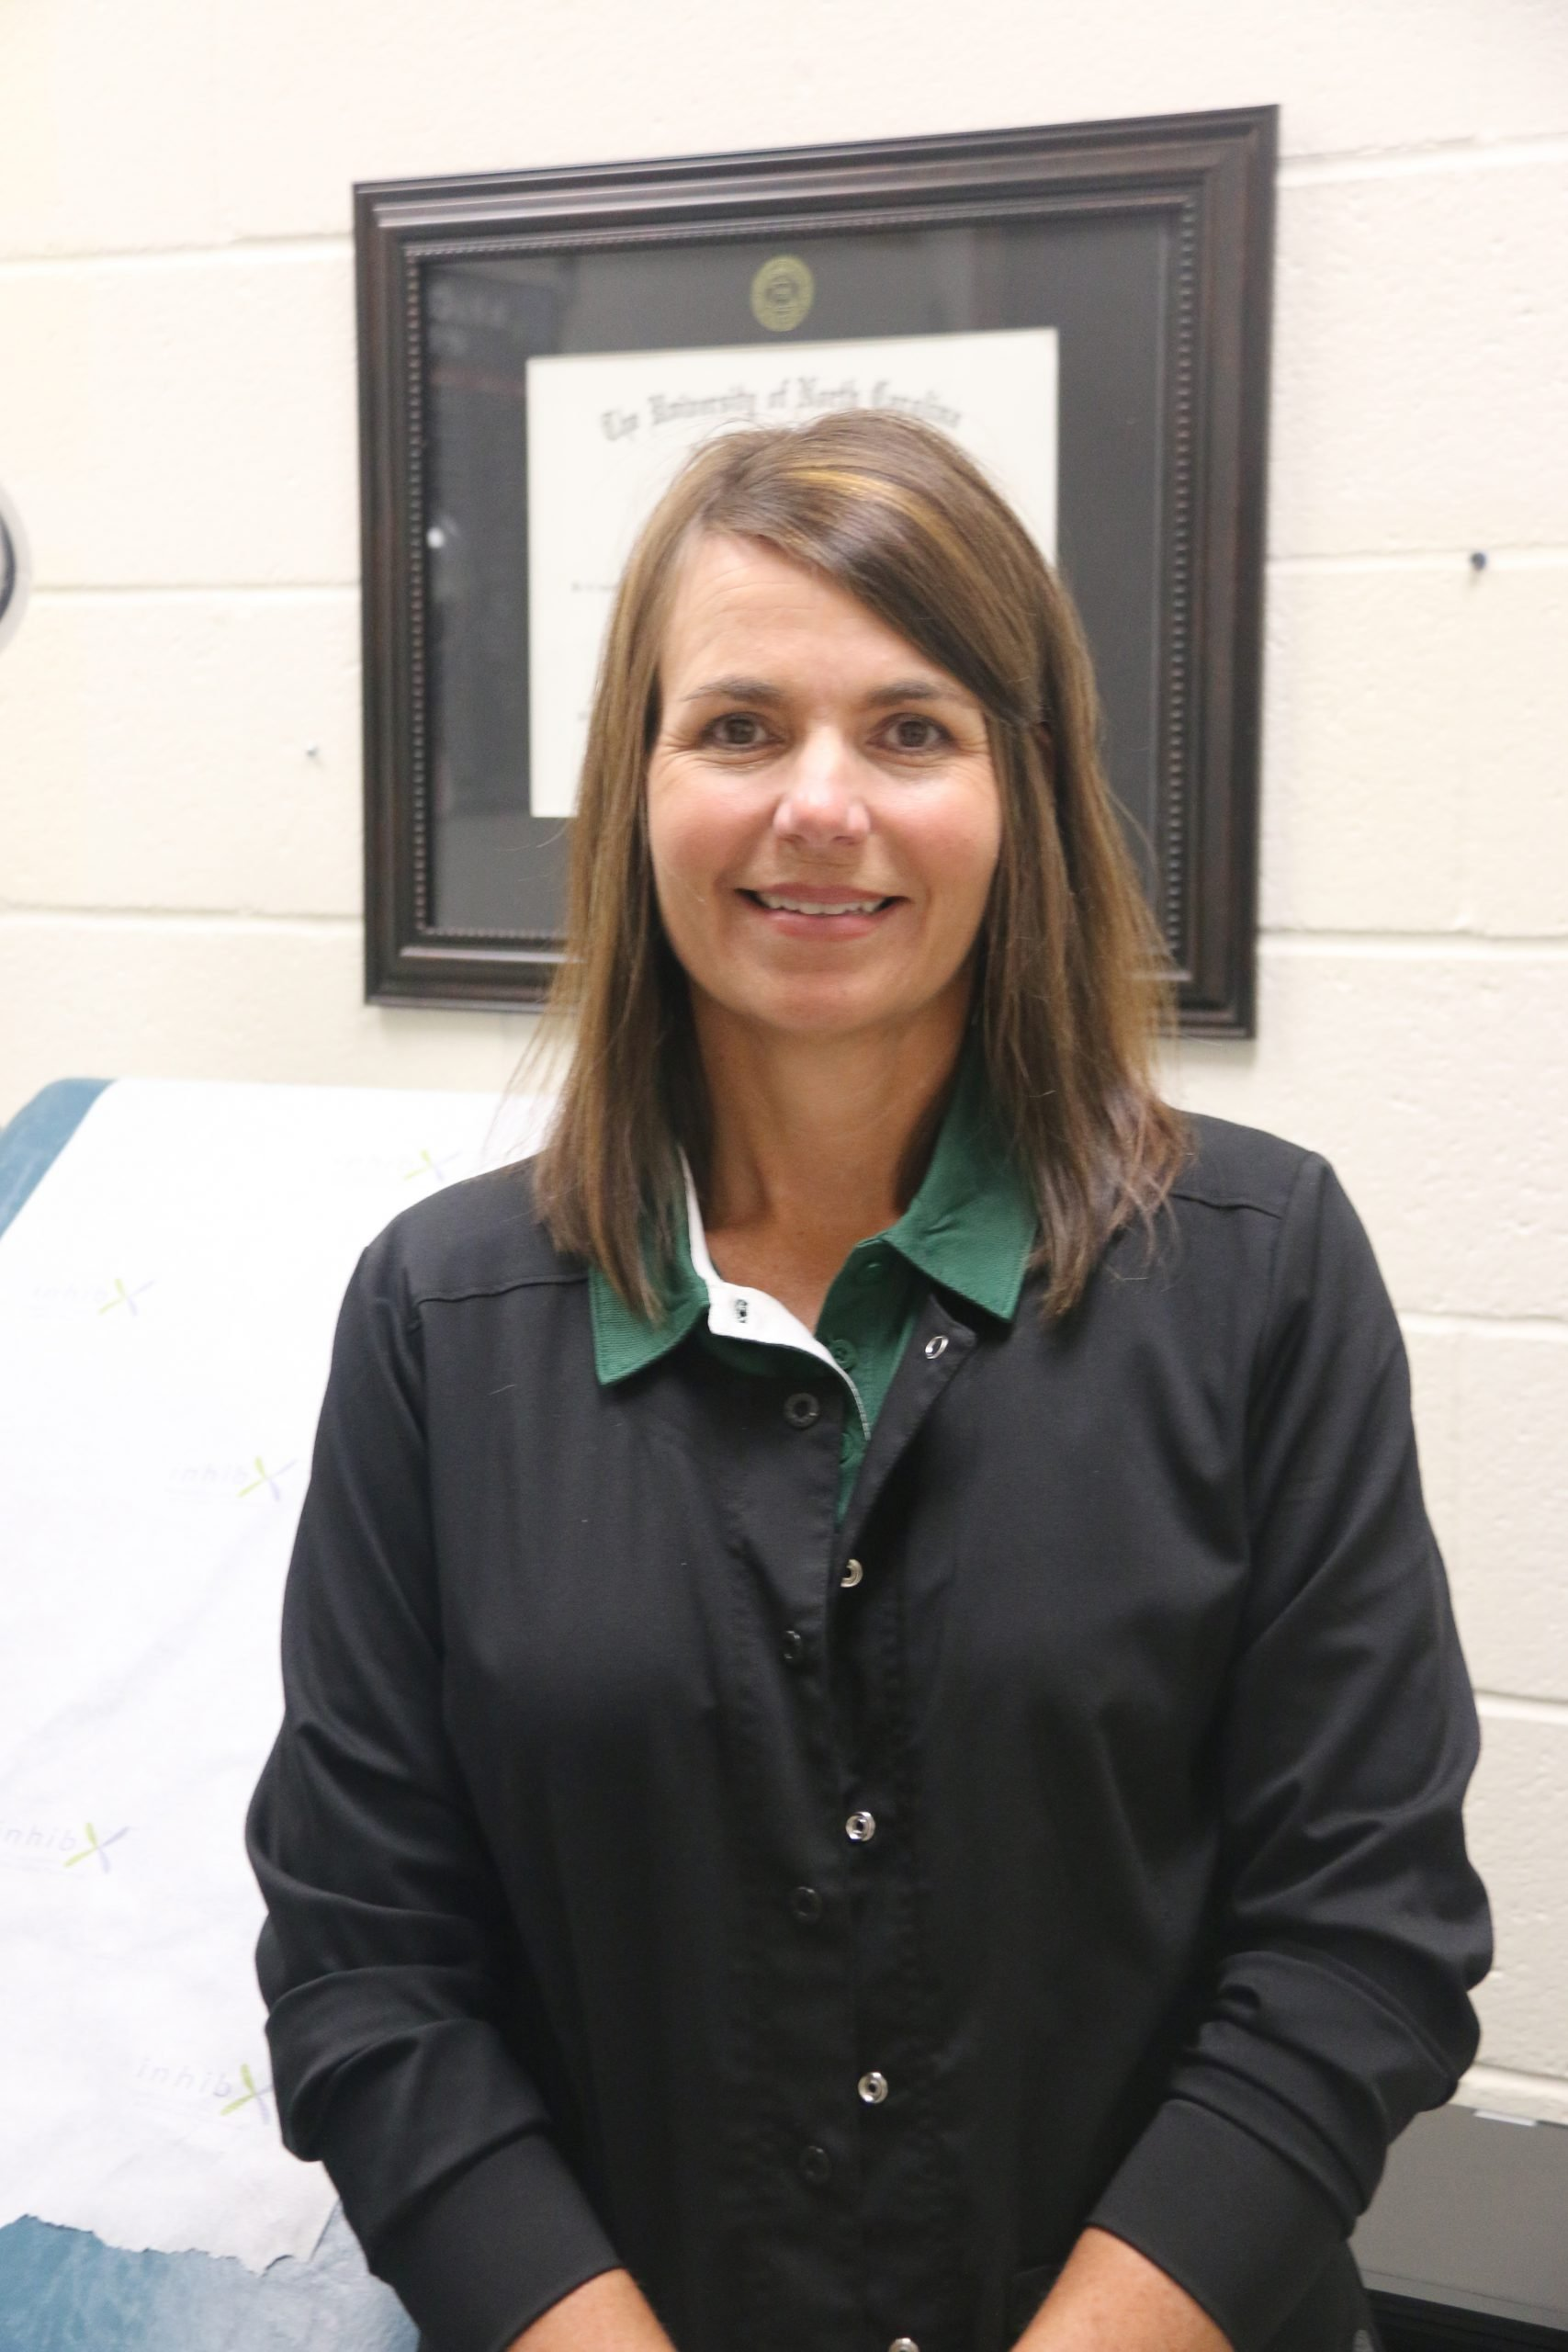 Holly Daly to Lead UMO's Health Services Department